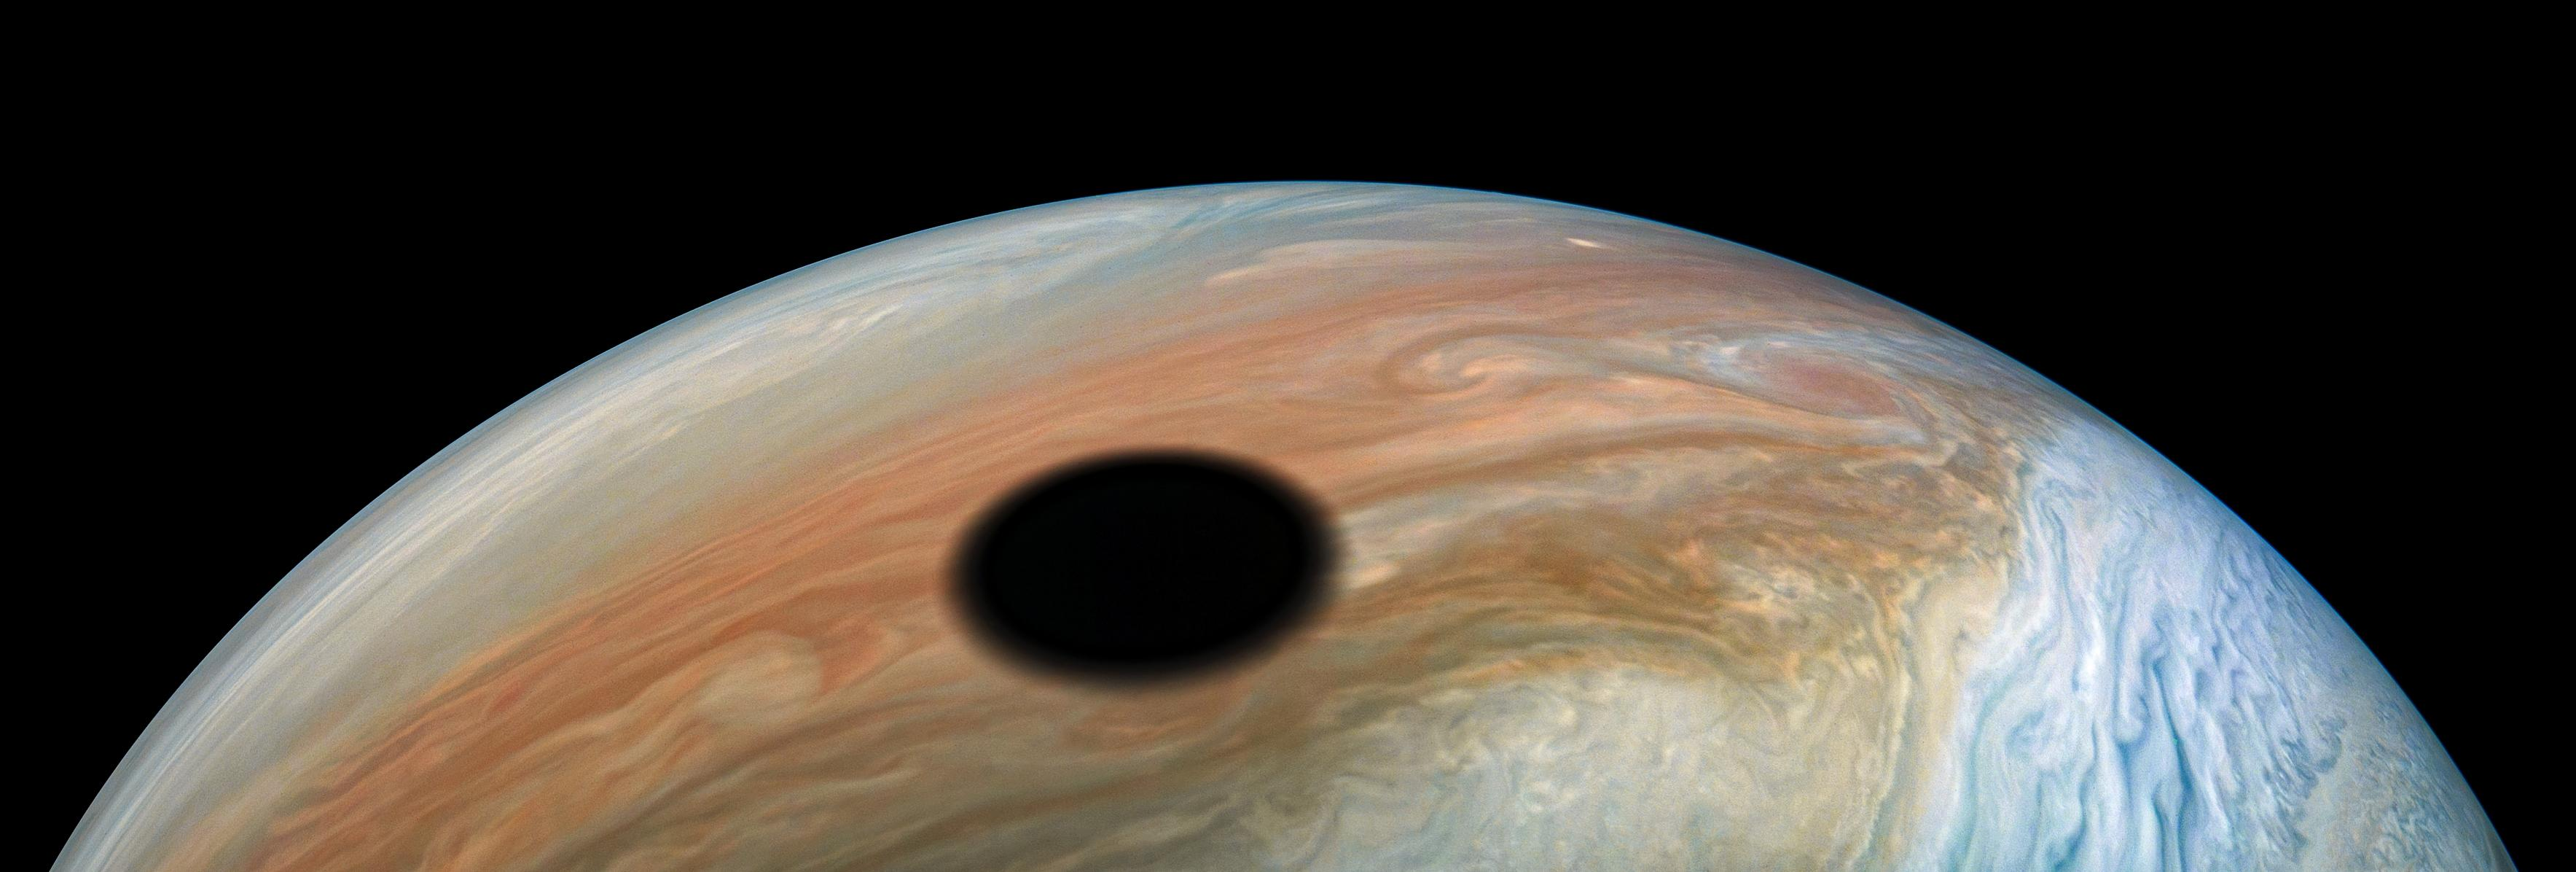 Jupiters volcanically active moon Io casts its shadow on the planet in this dramatic image from NASAs Juno spacecraft.